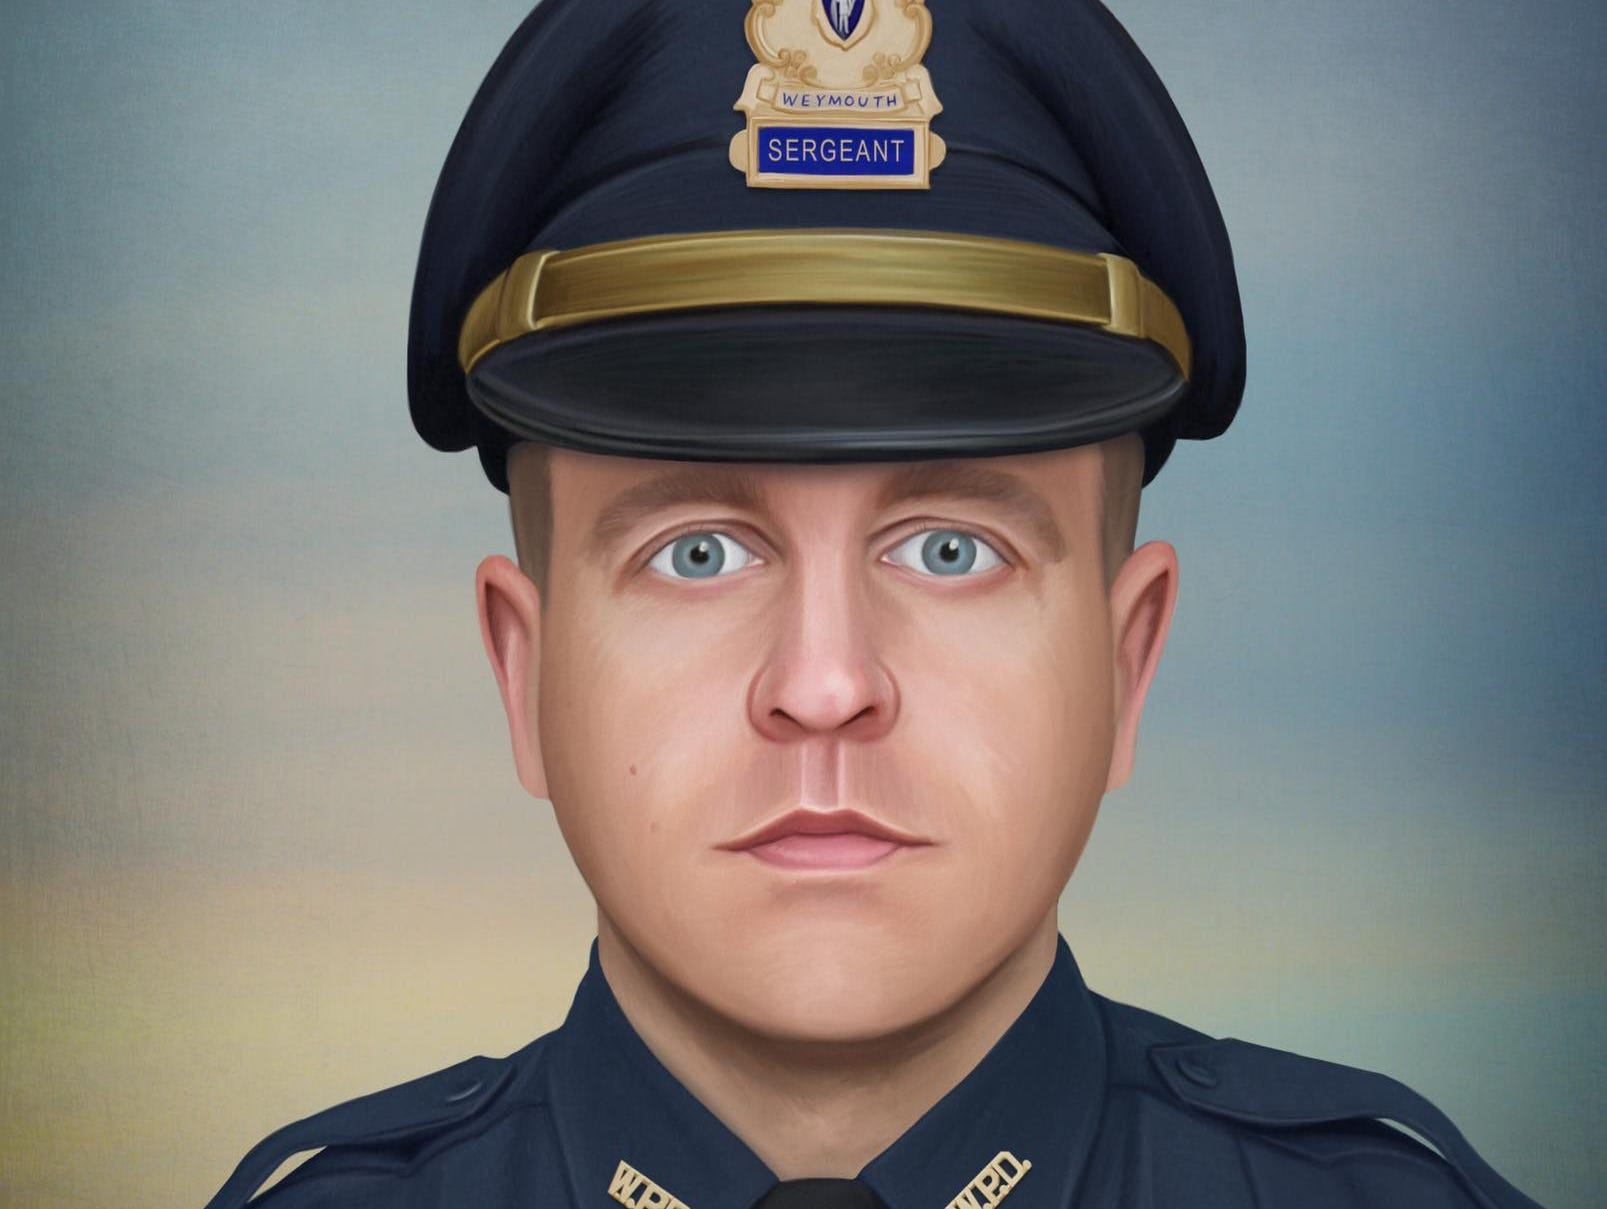 On July 15th, Weymouth (Massachusetts) Police Officer Michael Chesna, who was just finishing up his midnight to 8am tour of duty, confronted a suspect wanted for leaving the scene of an accident. The male violently assaulted Michael with a large rock, knocking him to the ground. The suspect disarmed Officer Chesna of his service weapon and murdered him.